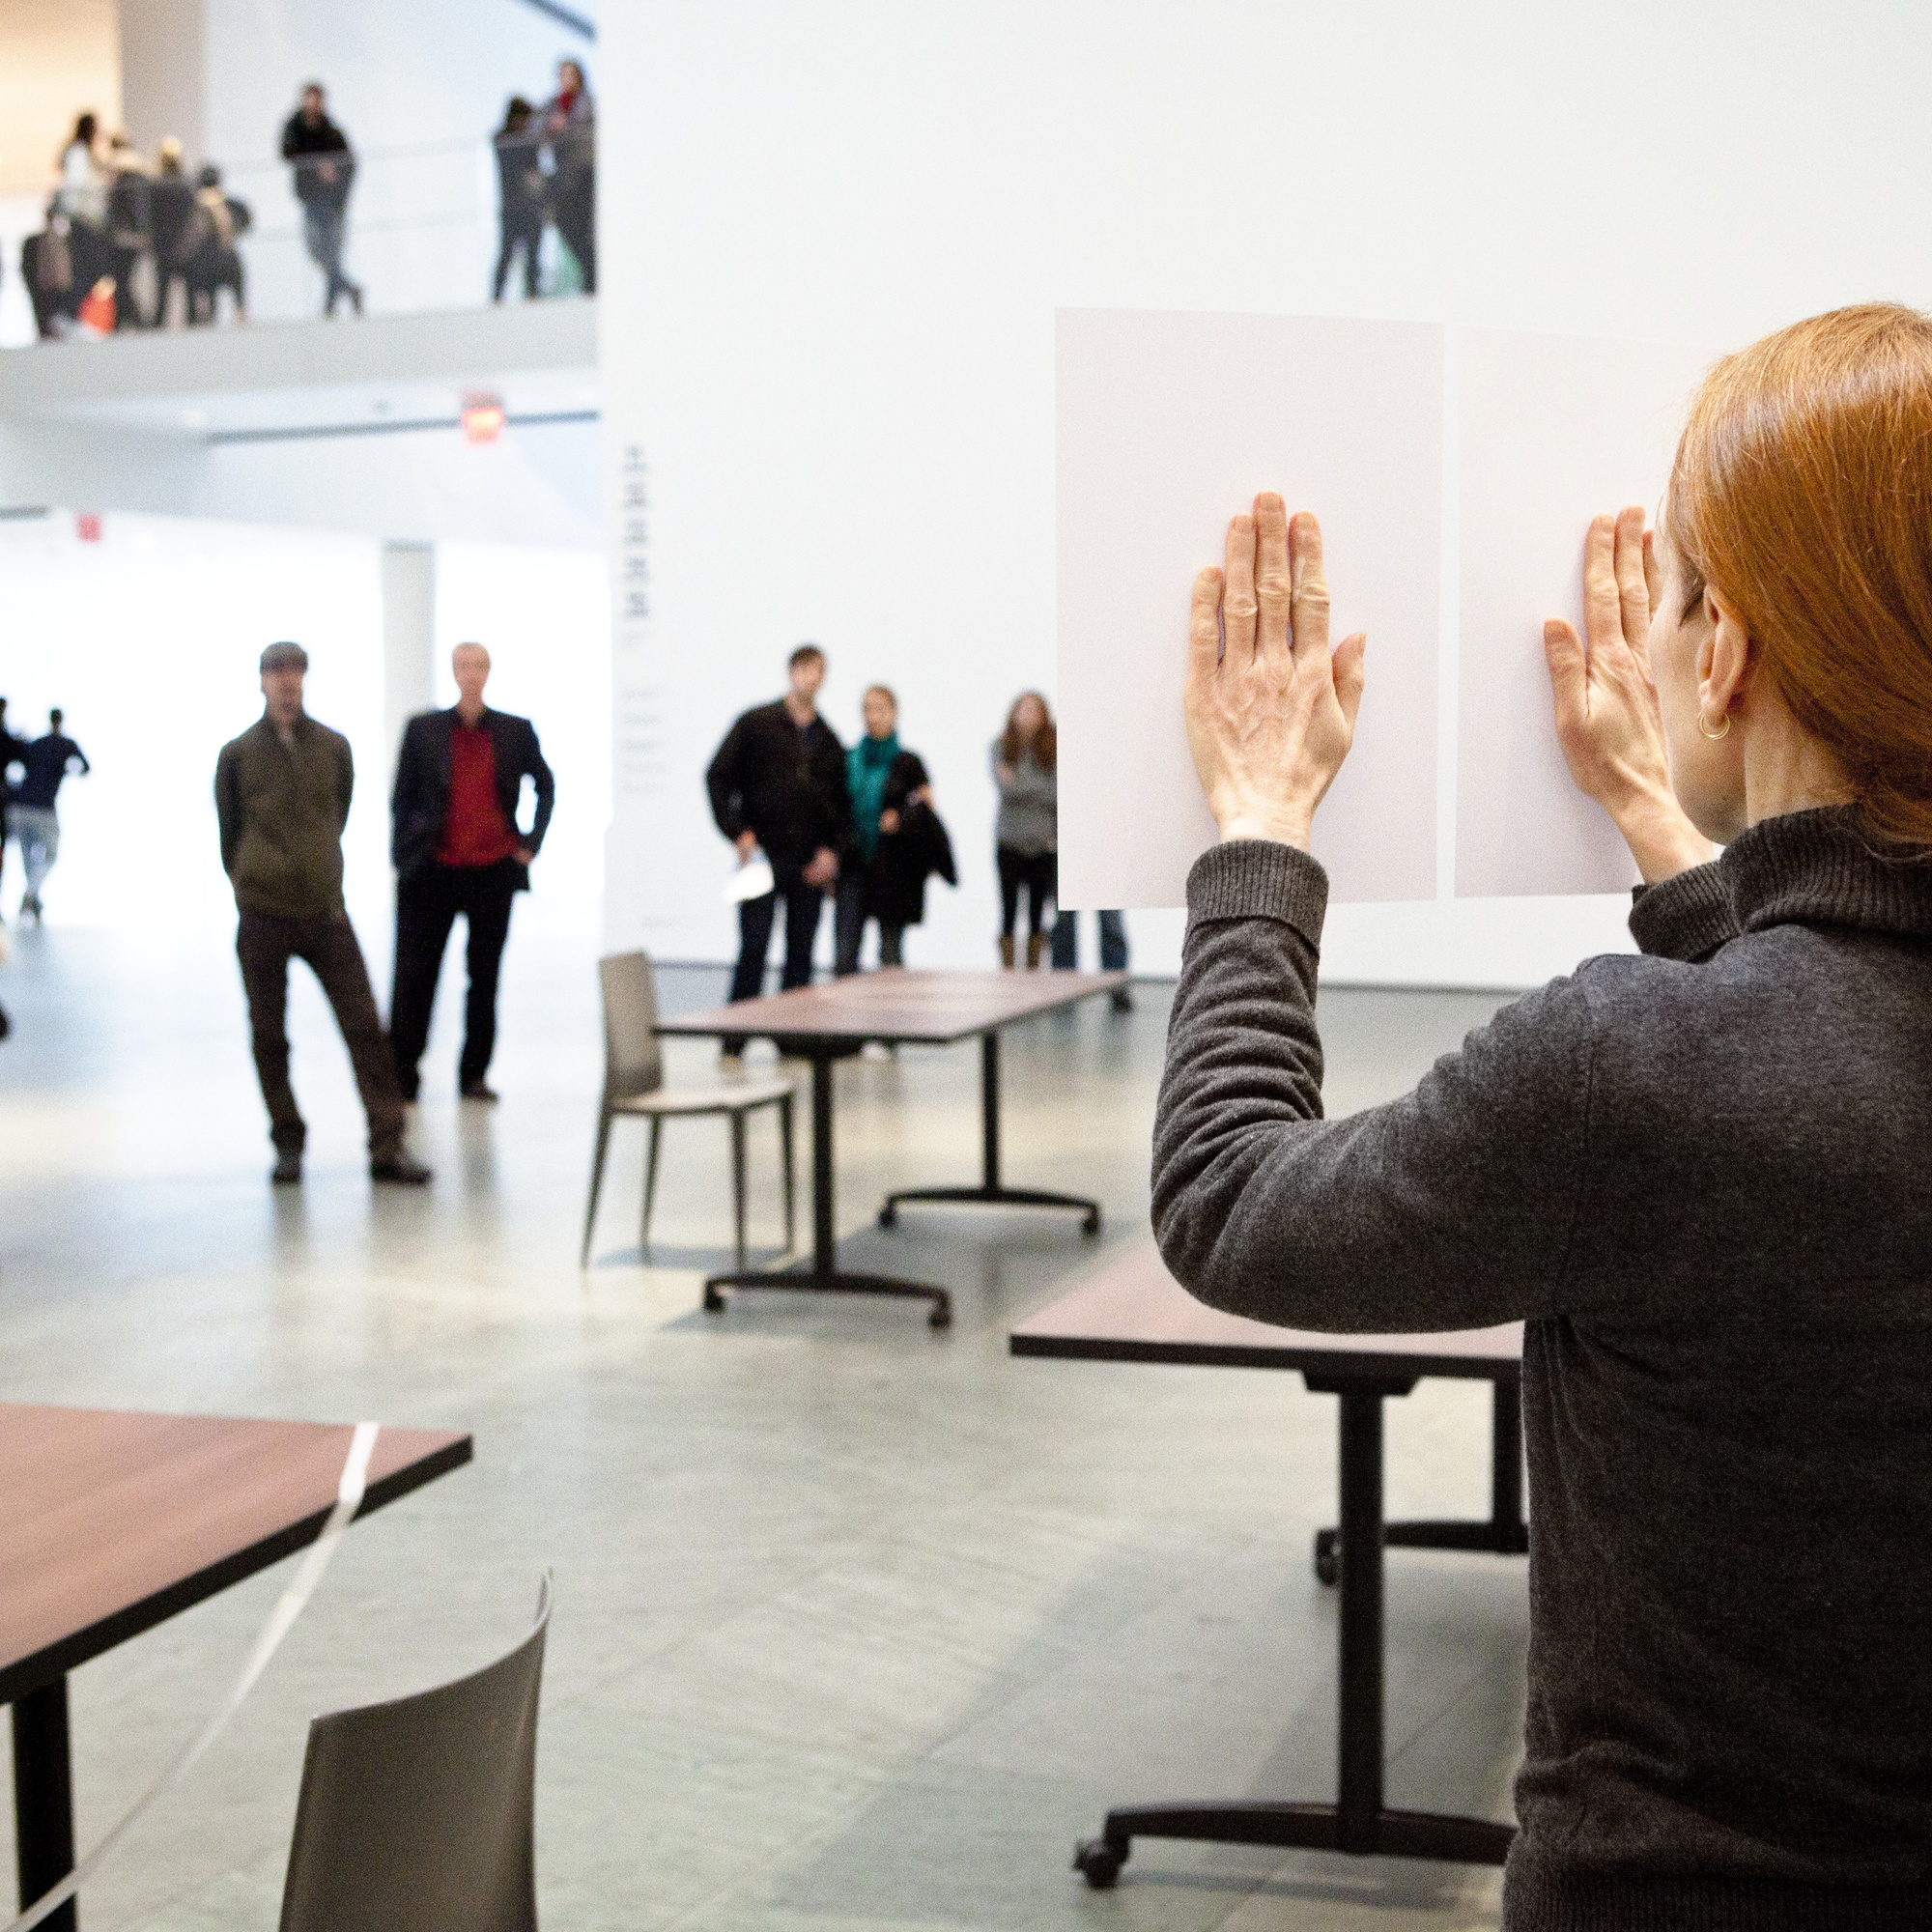 Marie Cool and Fabio Balducci. Untitled. 2006. Performed at The Museum of Modern Art, 2011. © 2011 Yi-Chun Wu / The Museum of Modern Art, New York